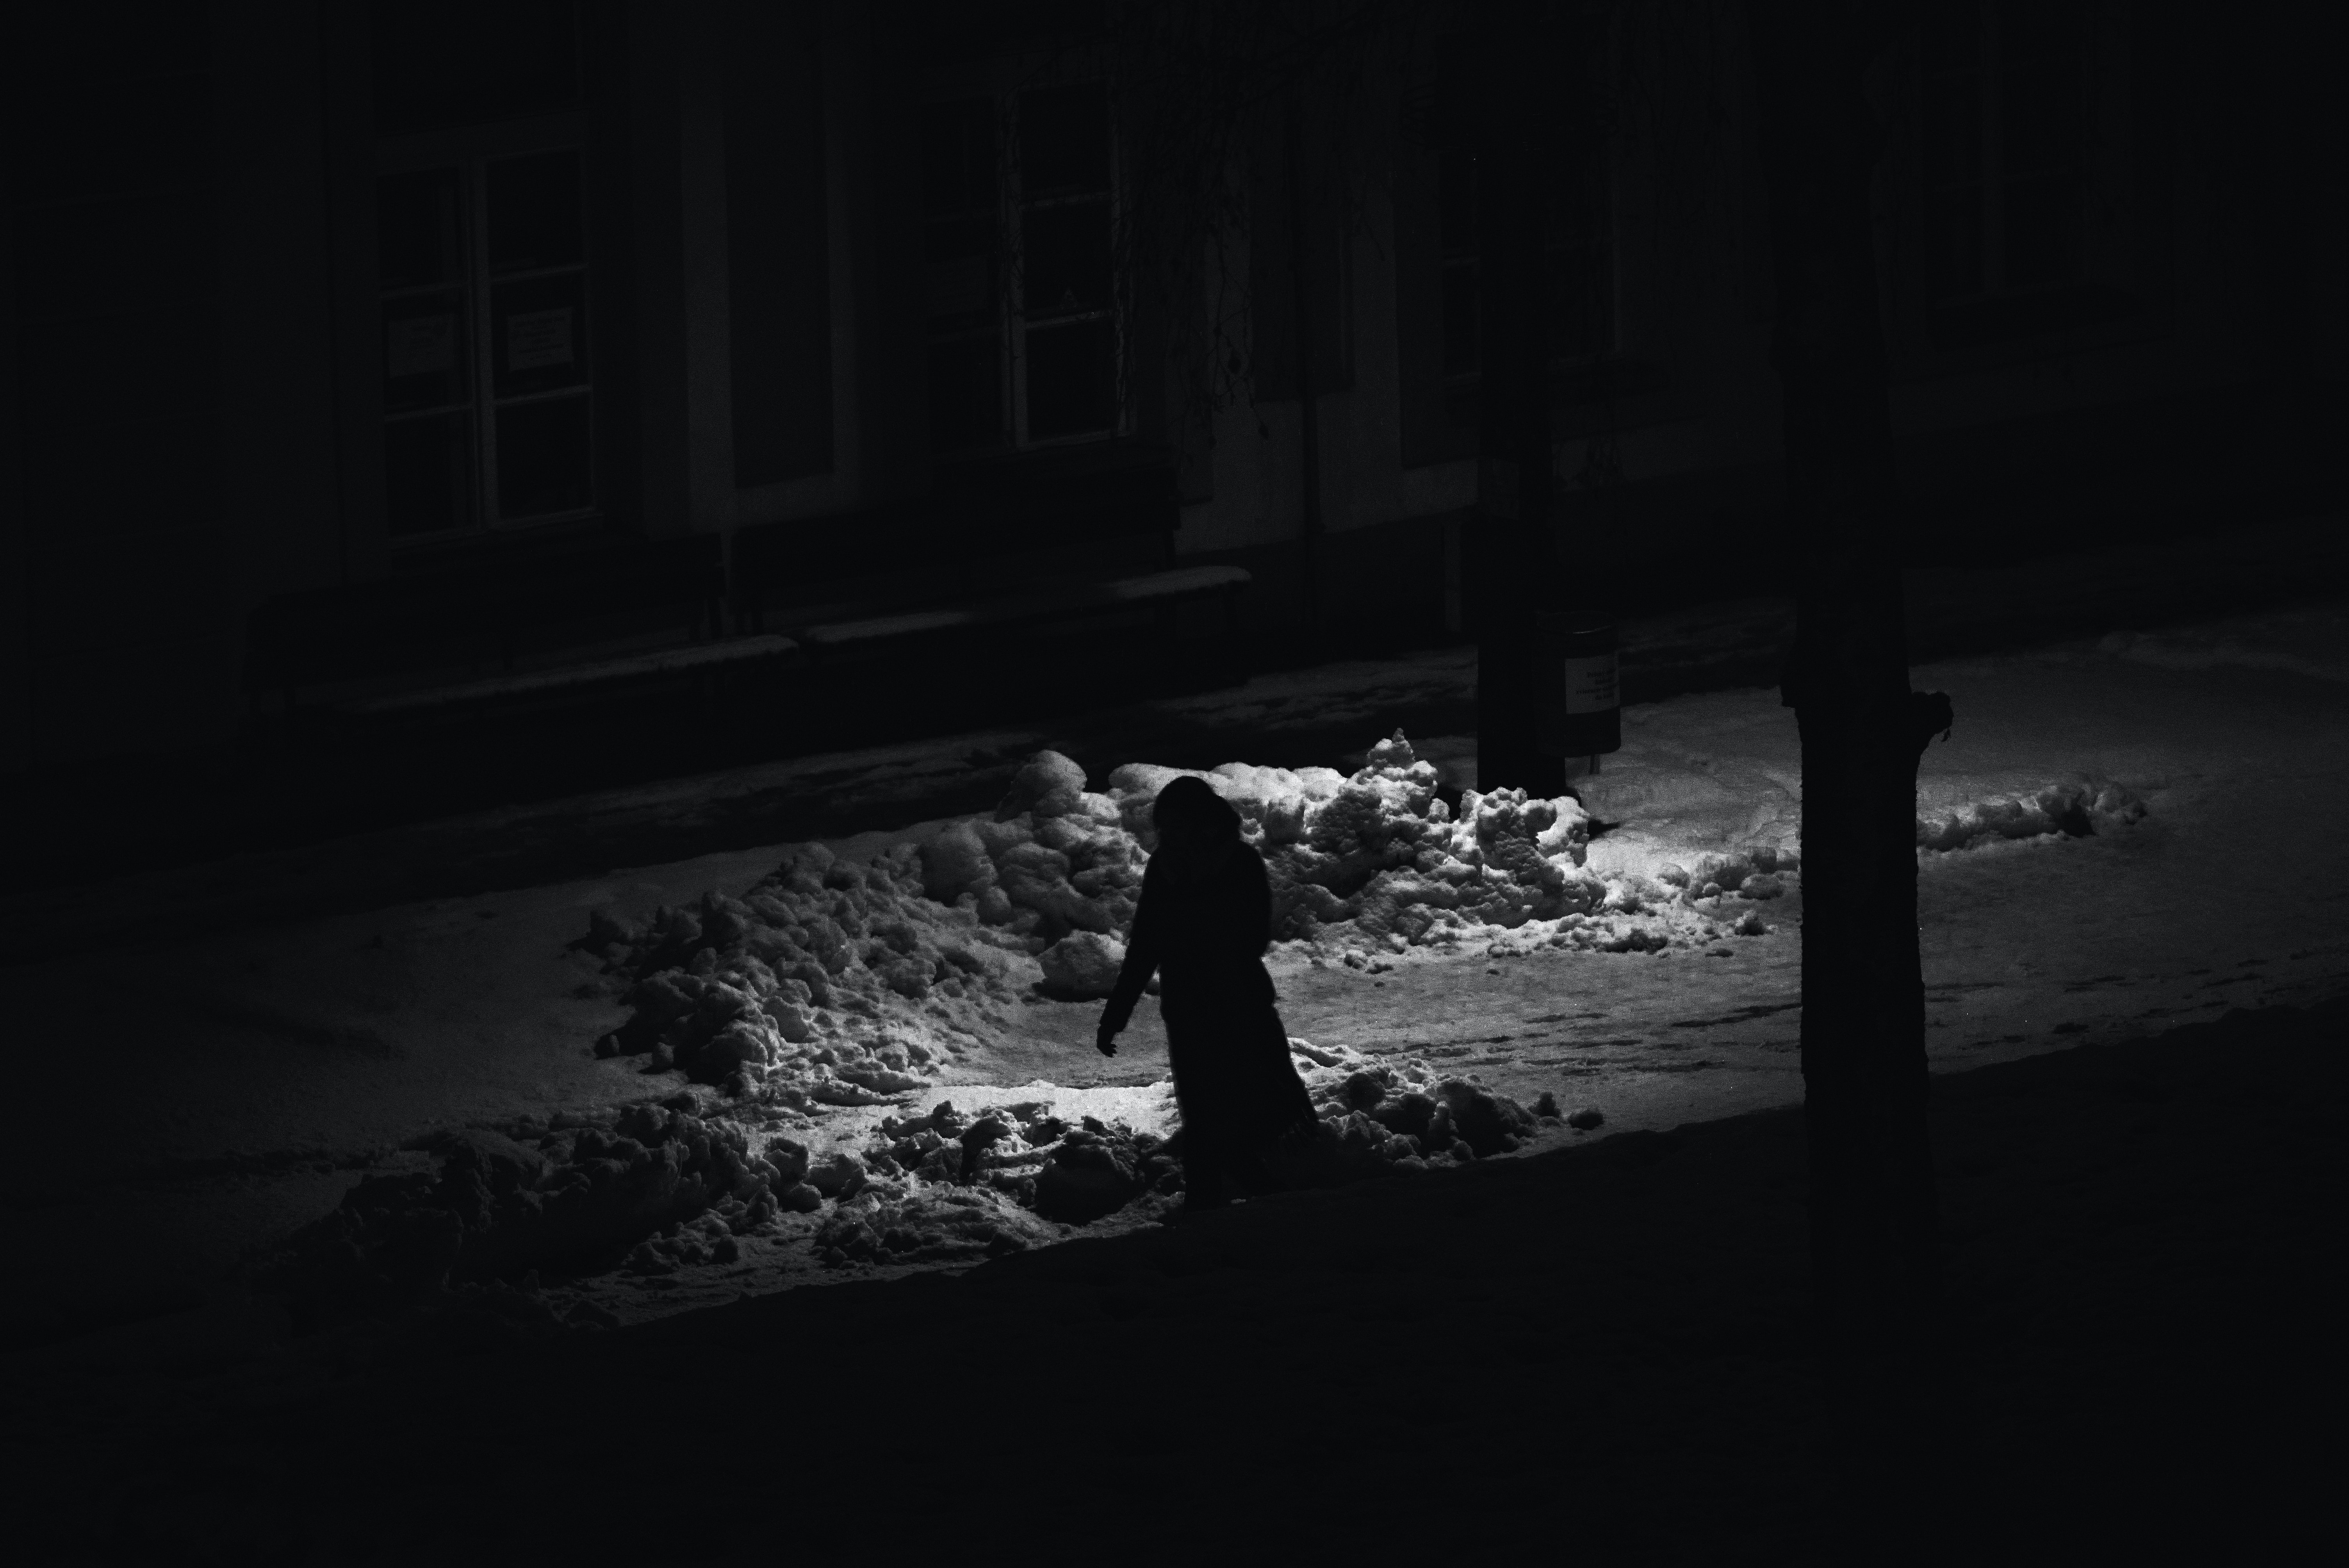 grayscale photography of person waling on street